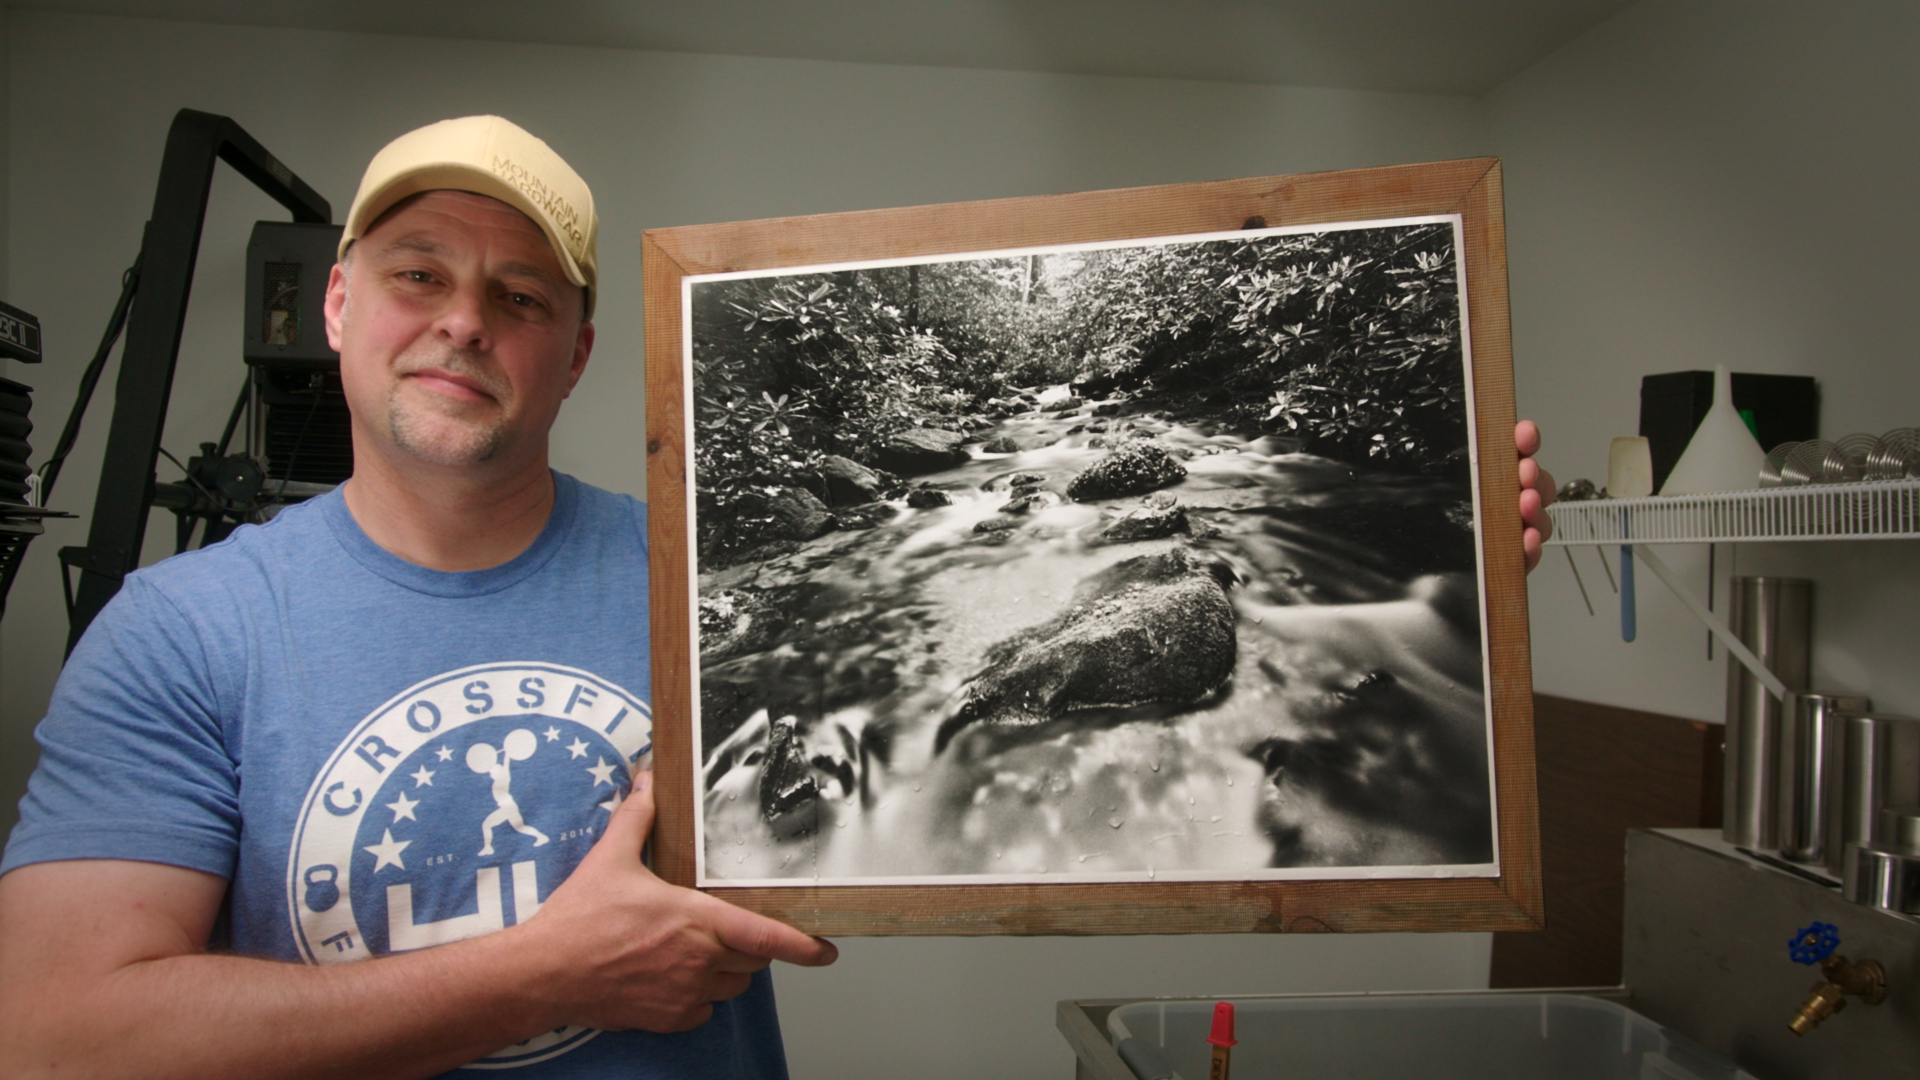 Ronnie shares his results in his darkroom.